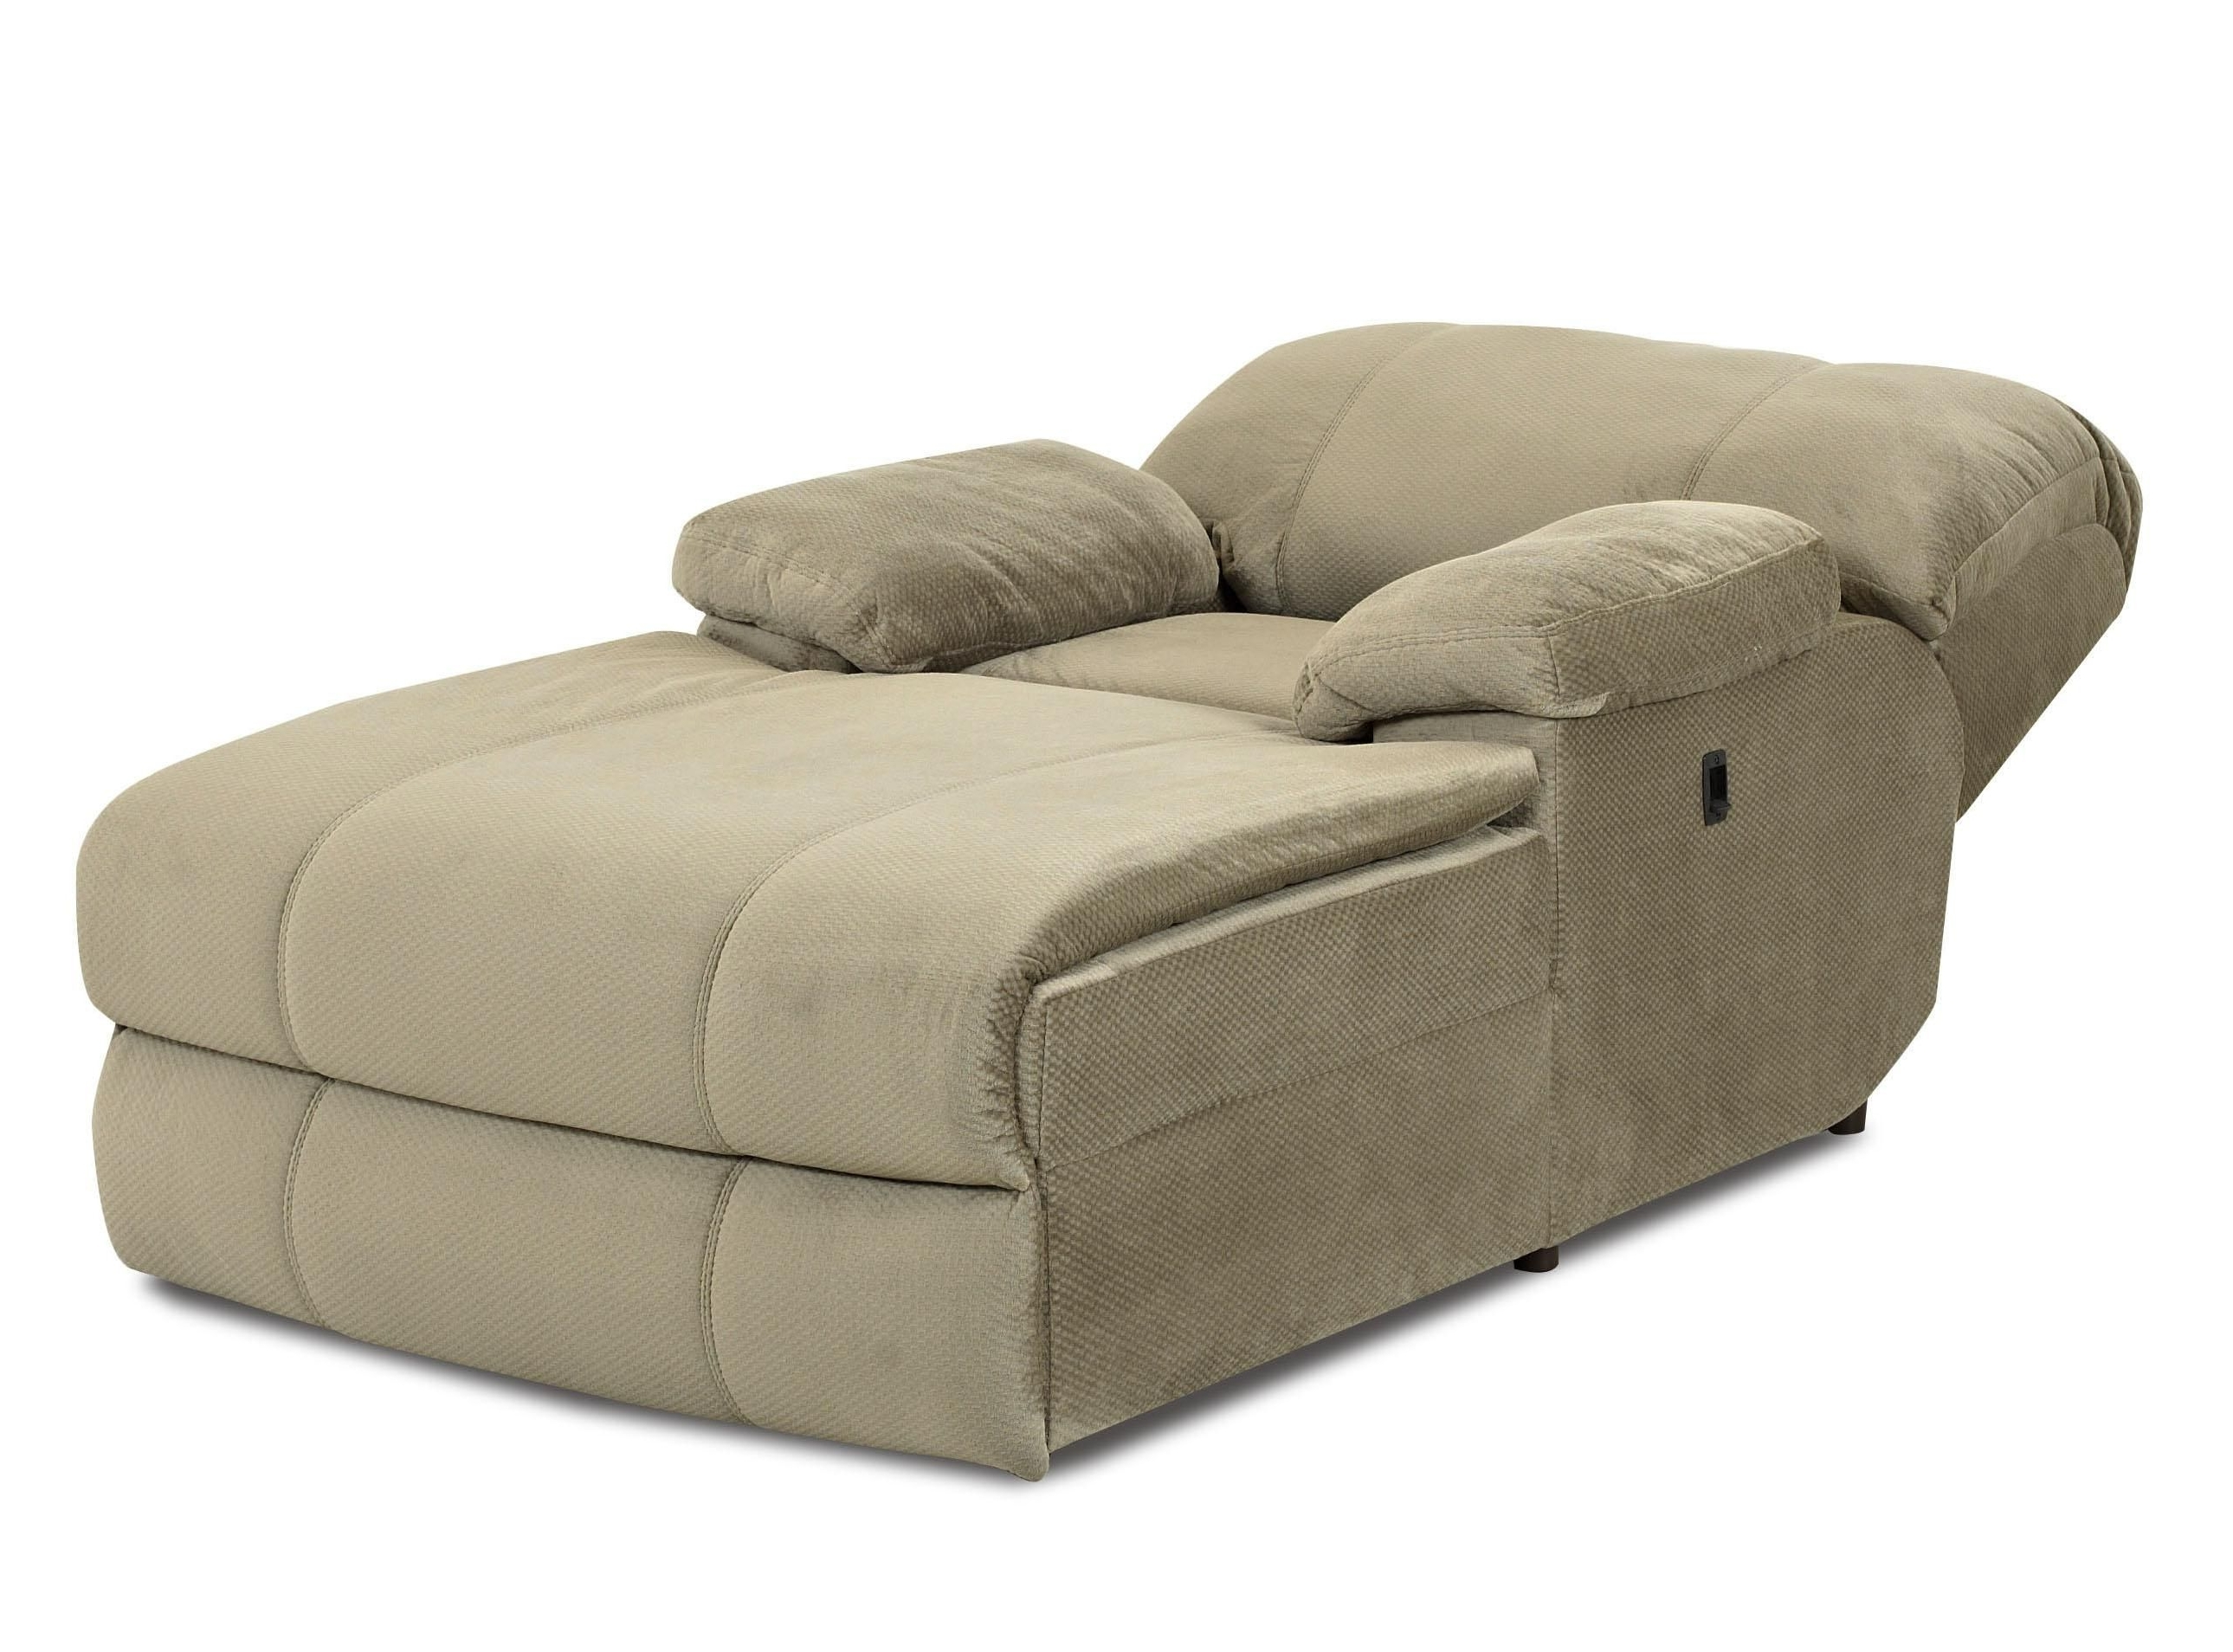 Fashionable Indoor Oversized Chaise Lounge (View 3 of 15)